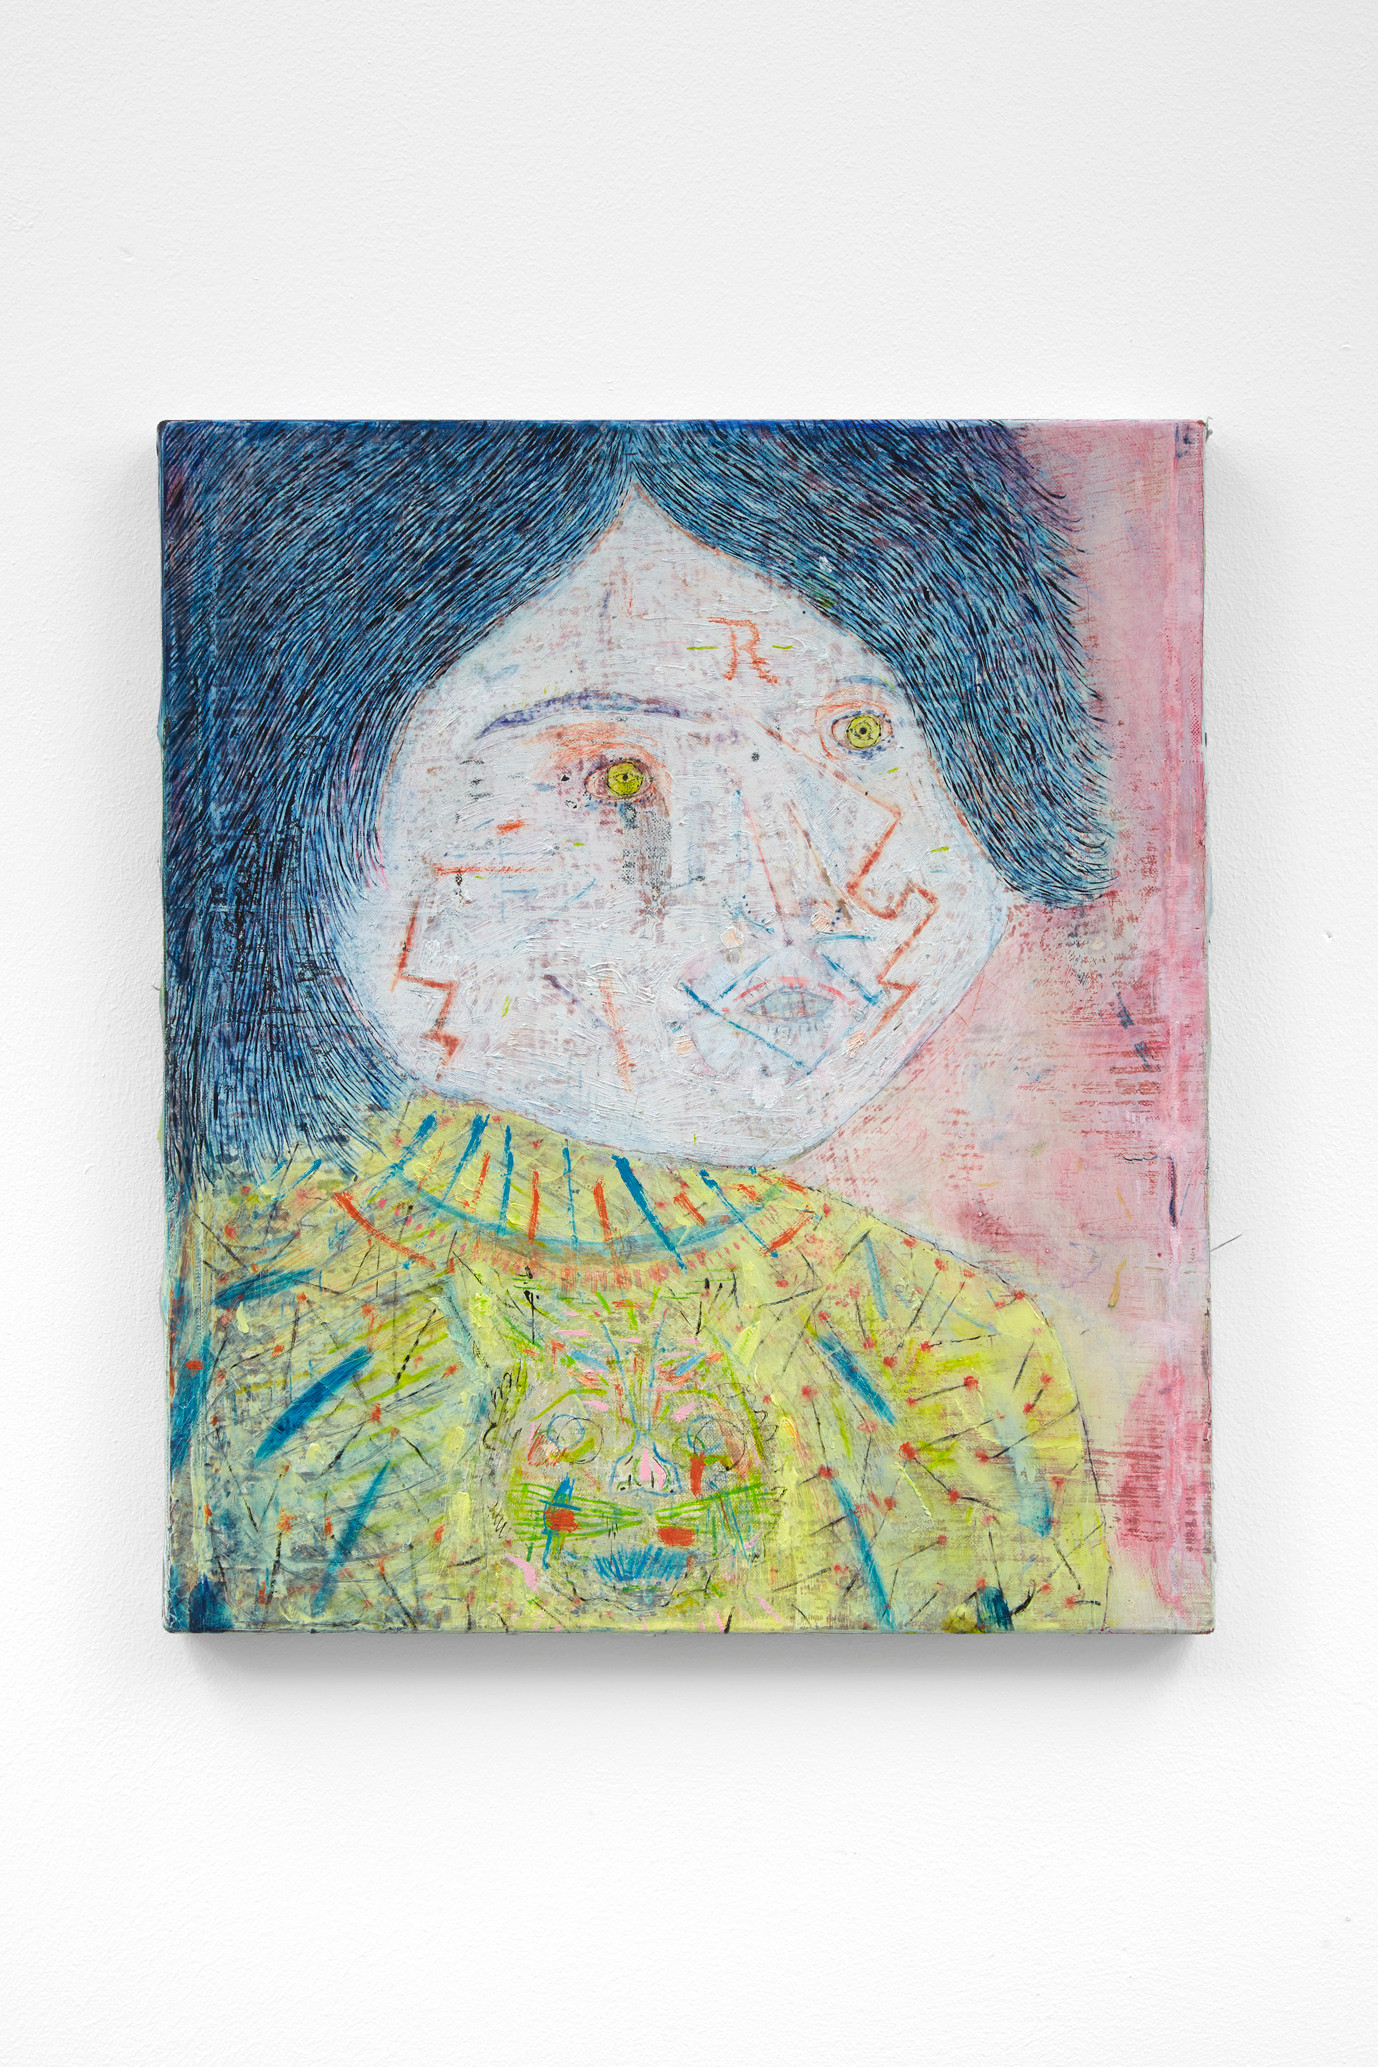 ~ the invisible brother. 2015-17. oil paint, oil pastel and pencil on linen. 41 x 35.5 cm